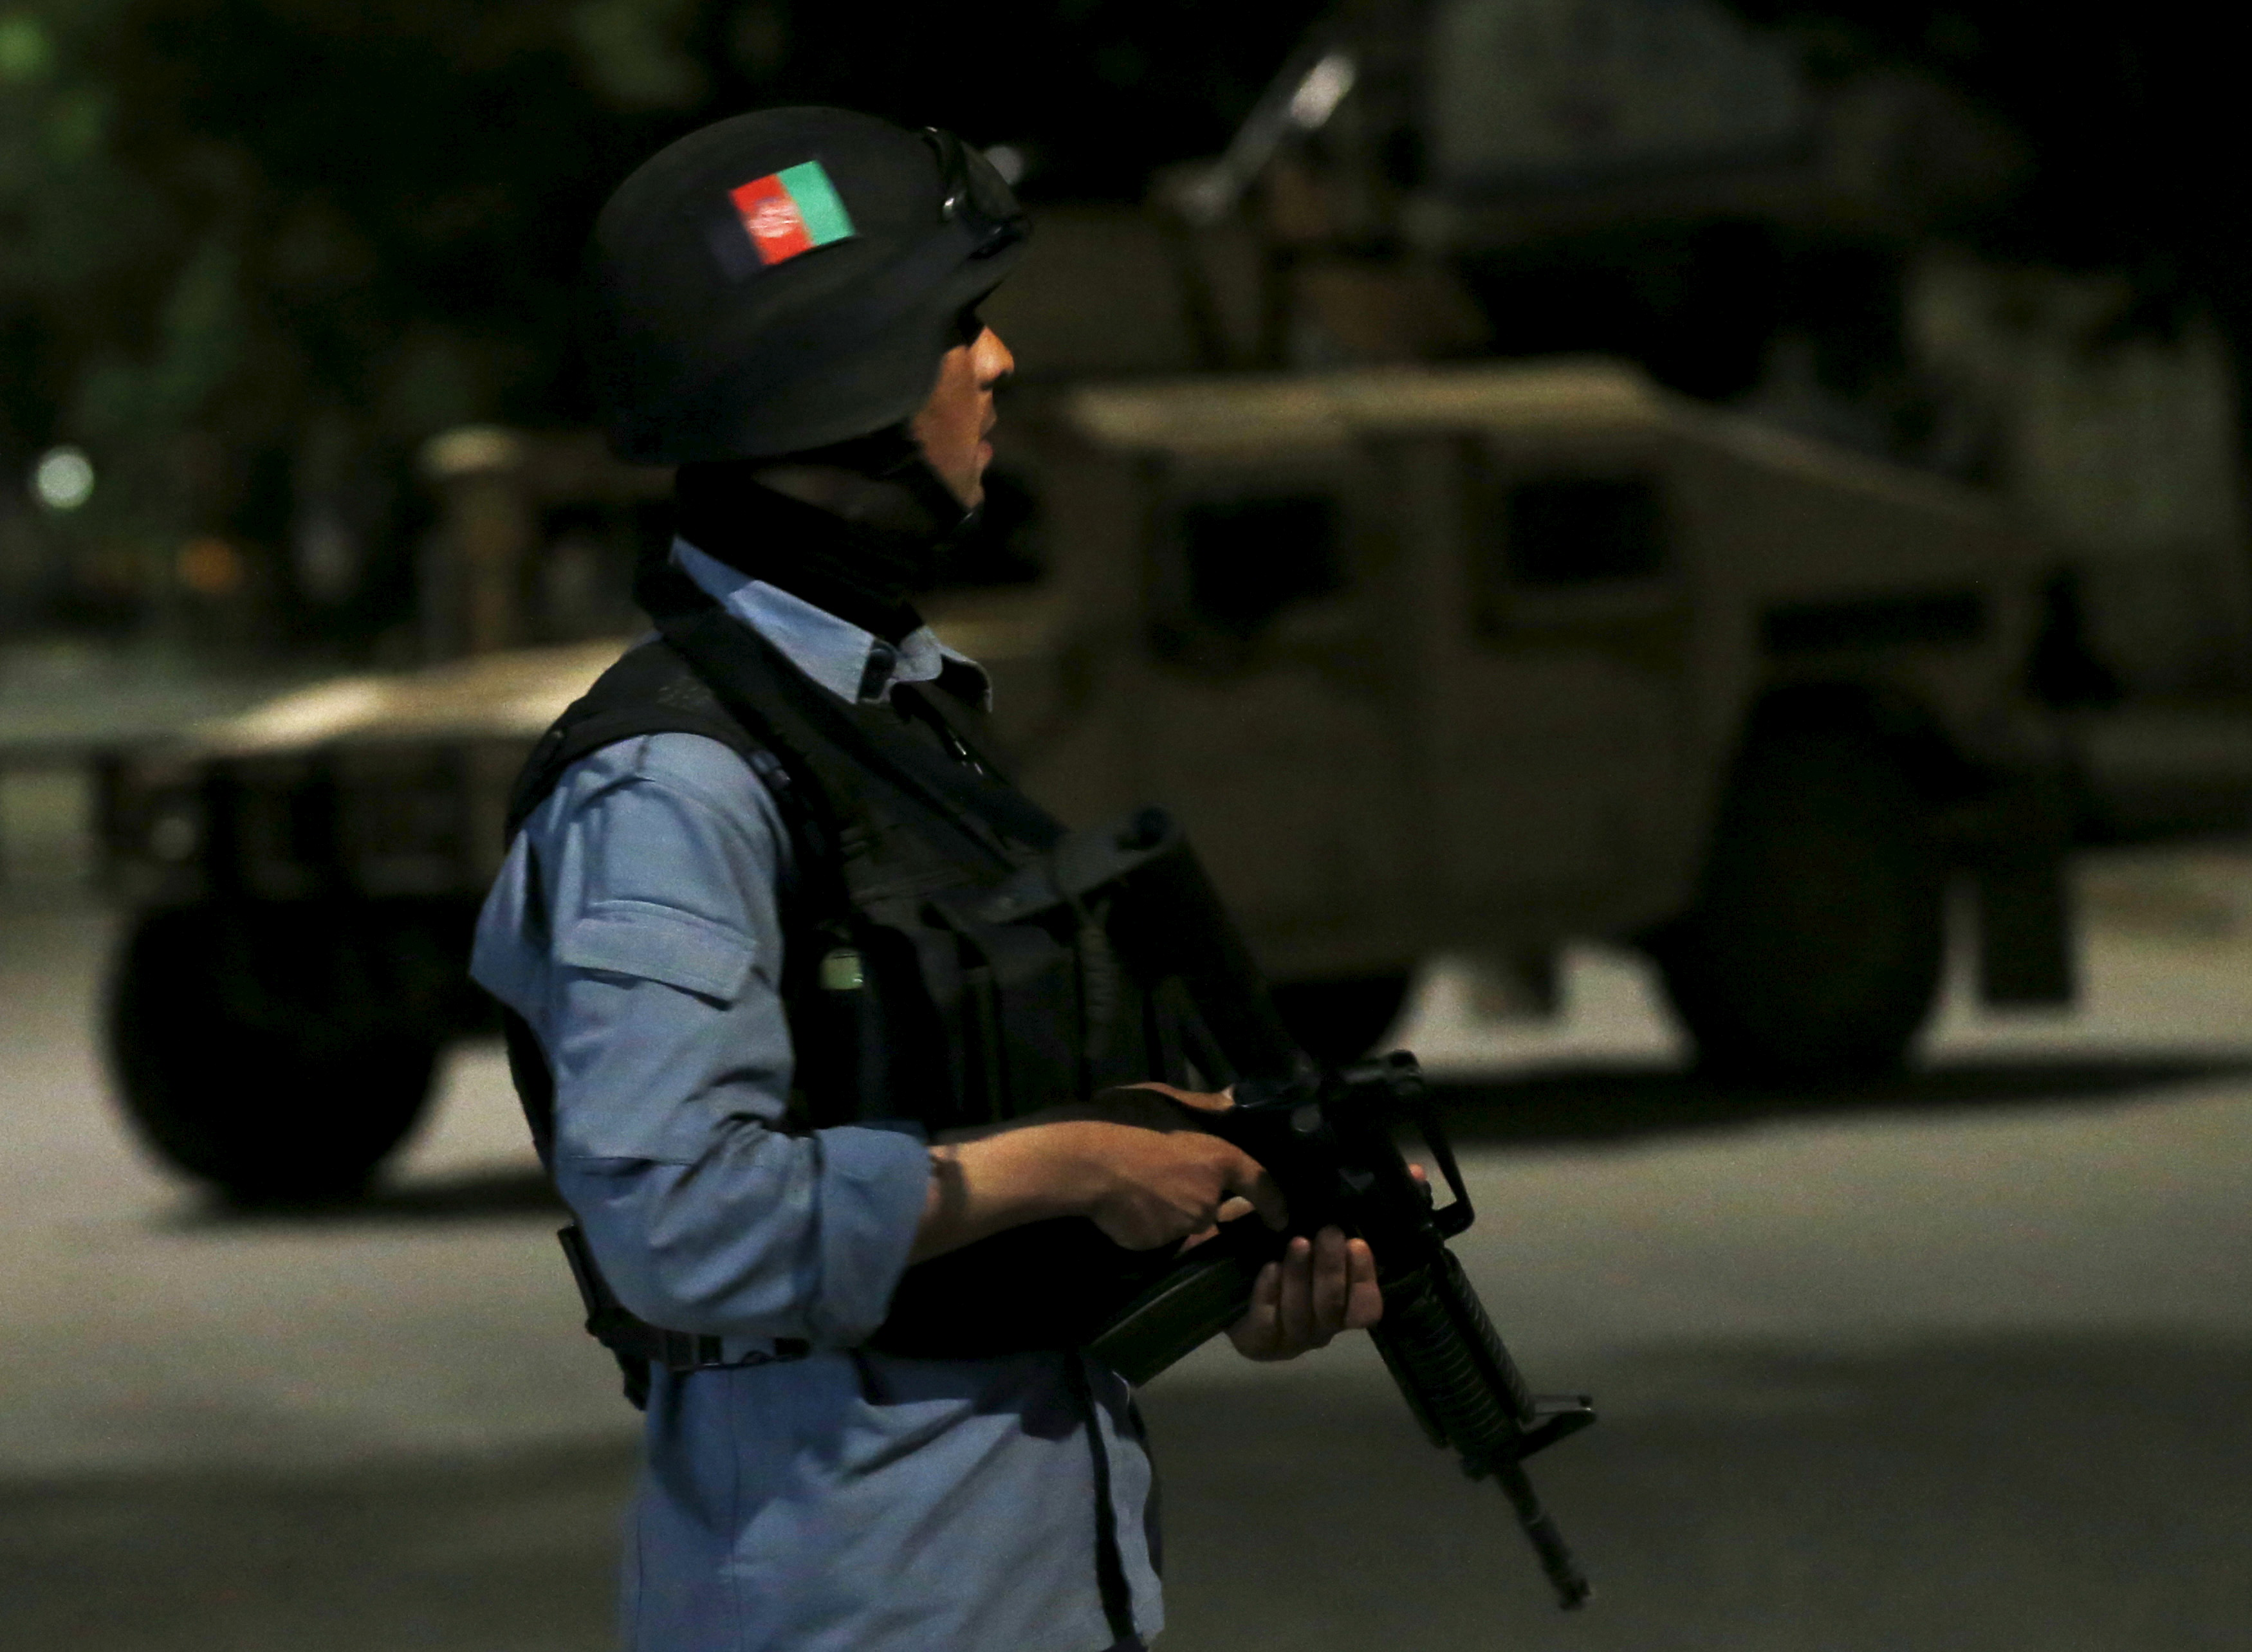 An Afghan policeman stands guard at the site of an attack in Kabul, Afghanistan May 13, 2015.